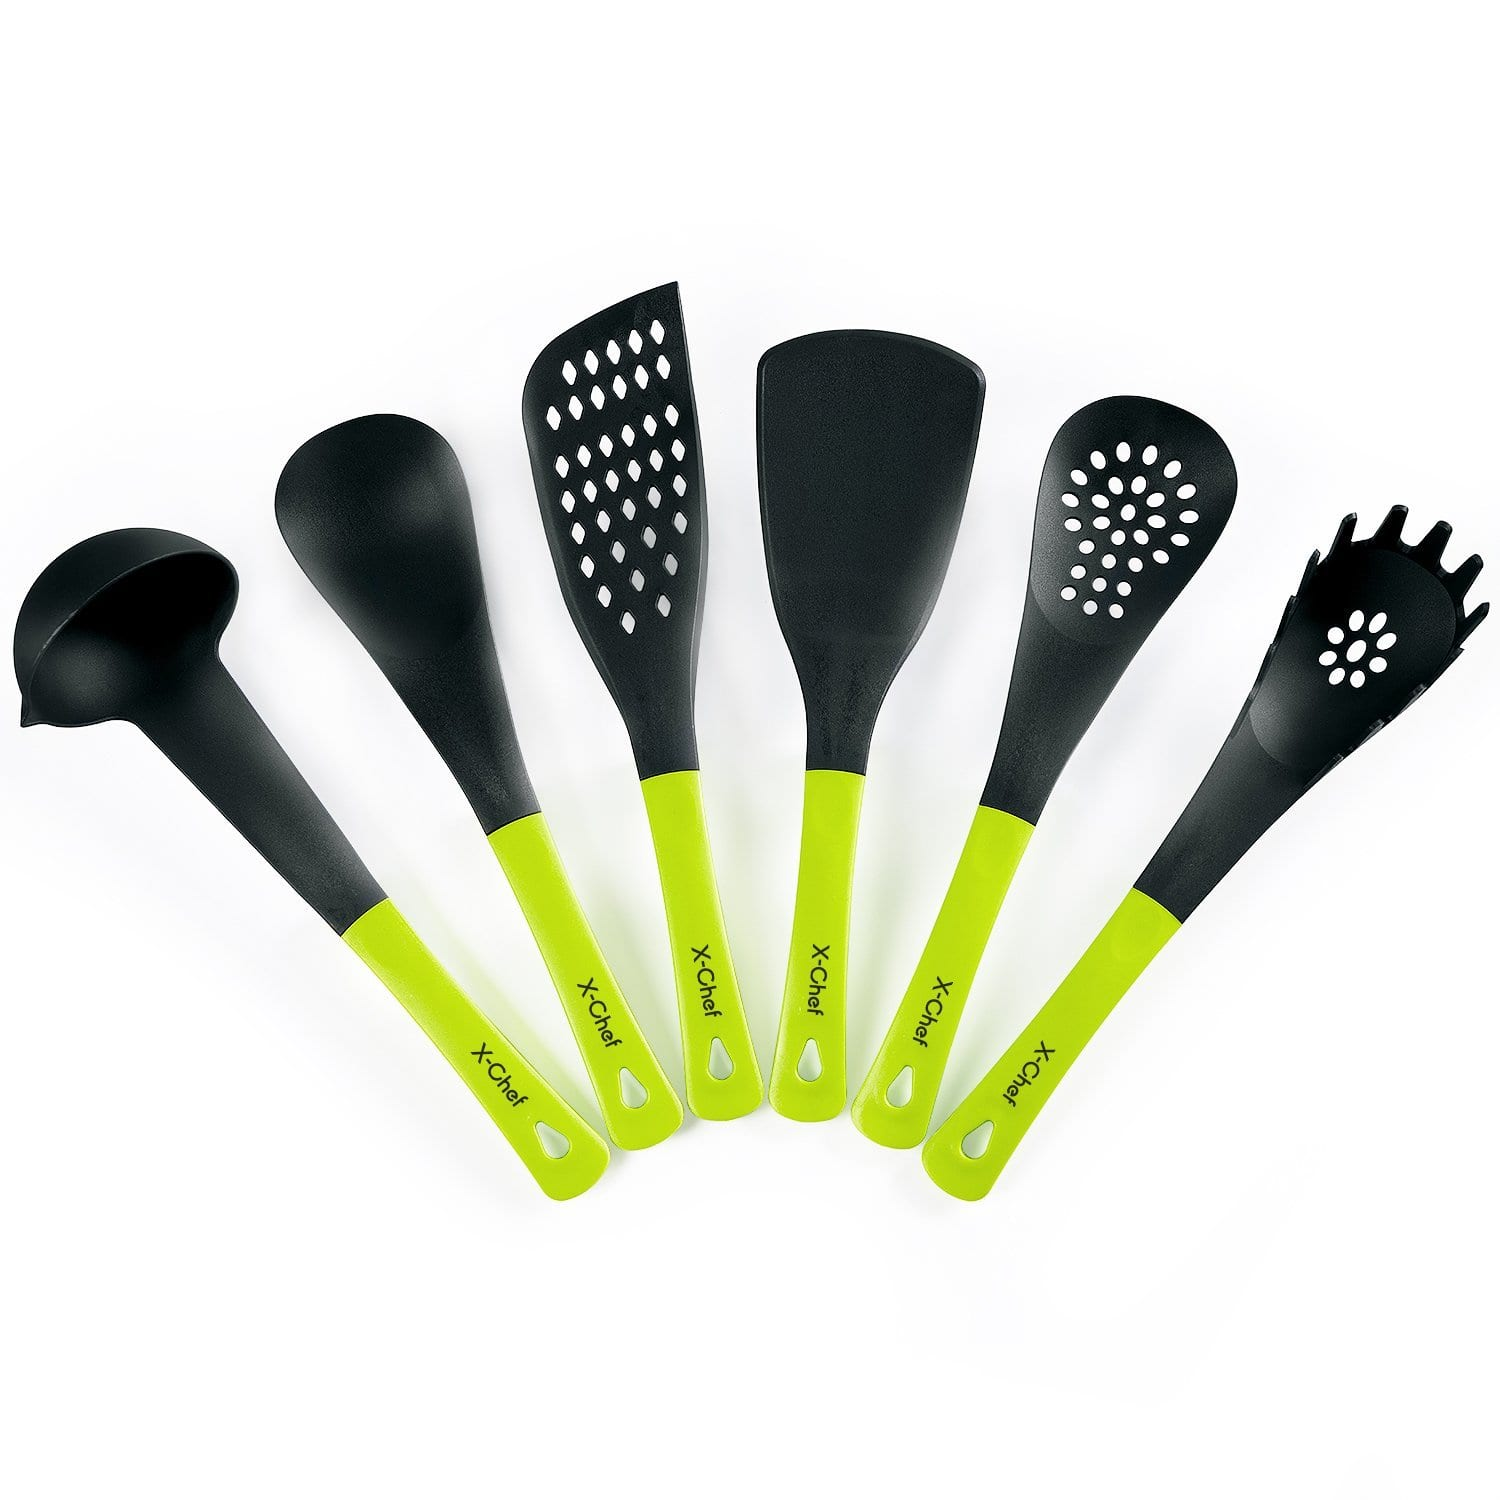 6-Piece Non-stick Kitchen Cooking Tool Set for $3.99 AC  for amazon prime members